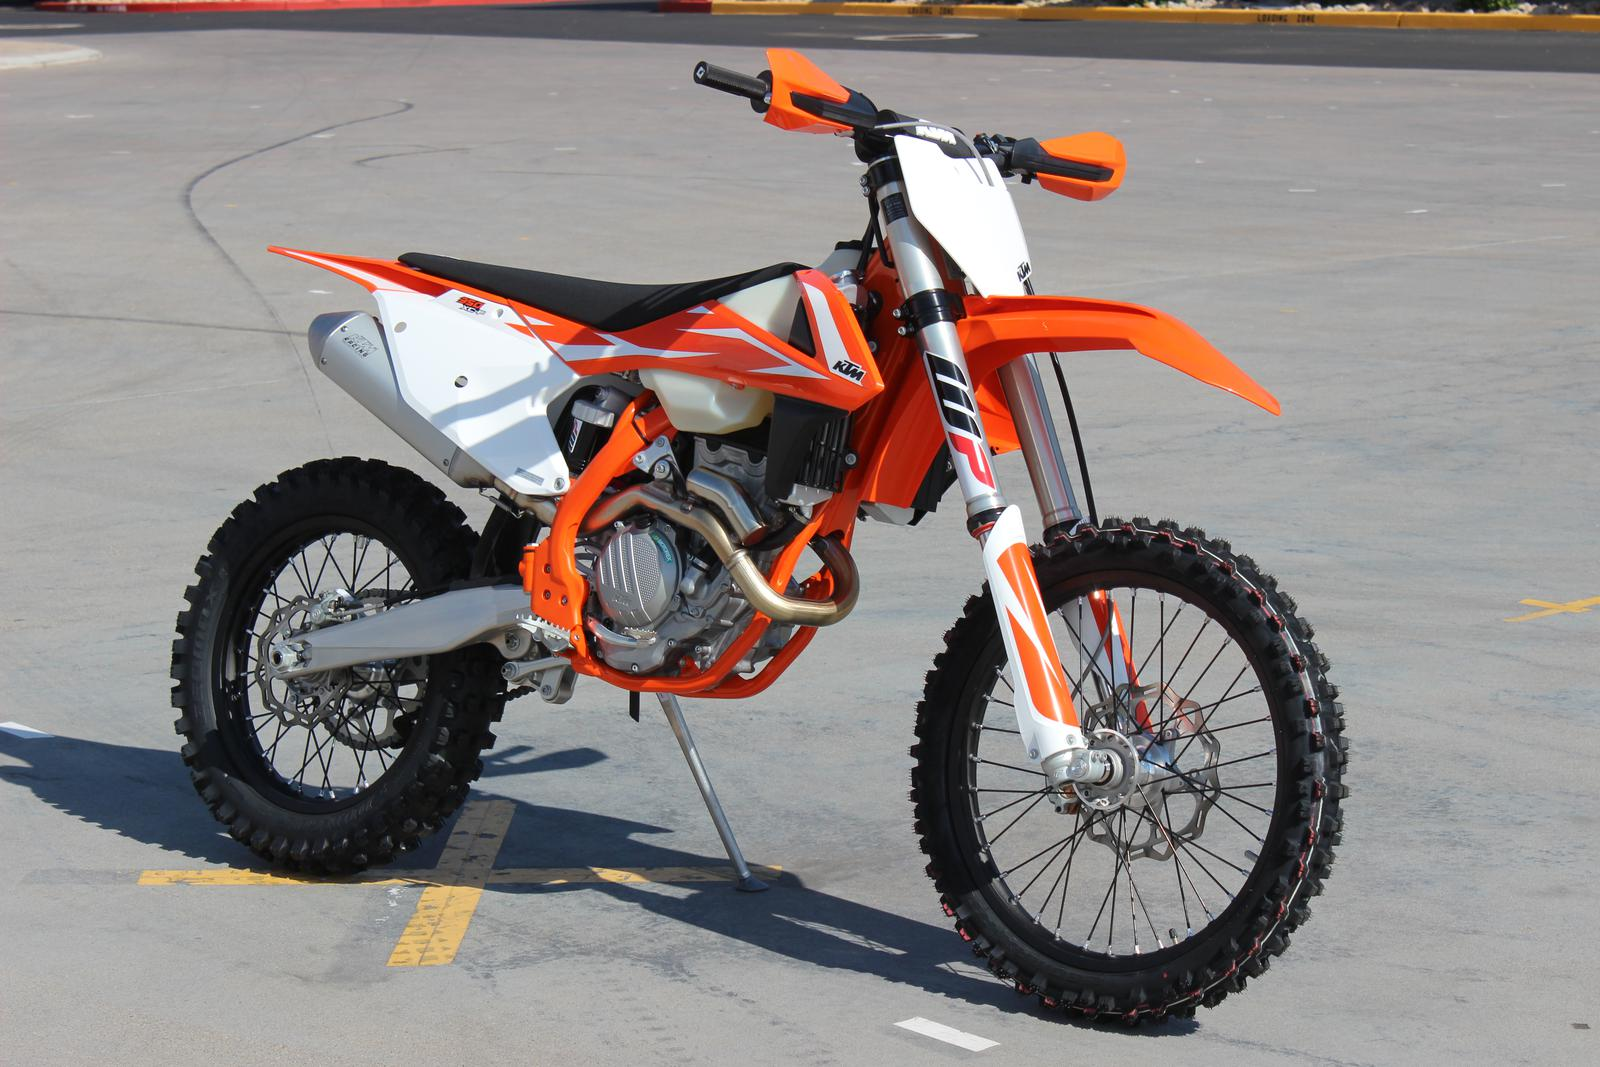 2018 ktm xc.  2018 2018 ktm 350 xcf for sale in scottsdale az  go motorcycles 480  6091800 intended ktm xc n